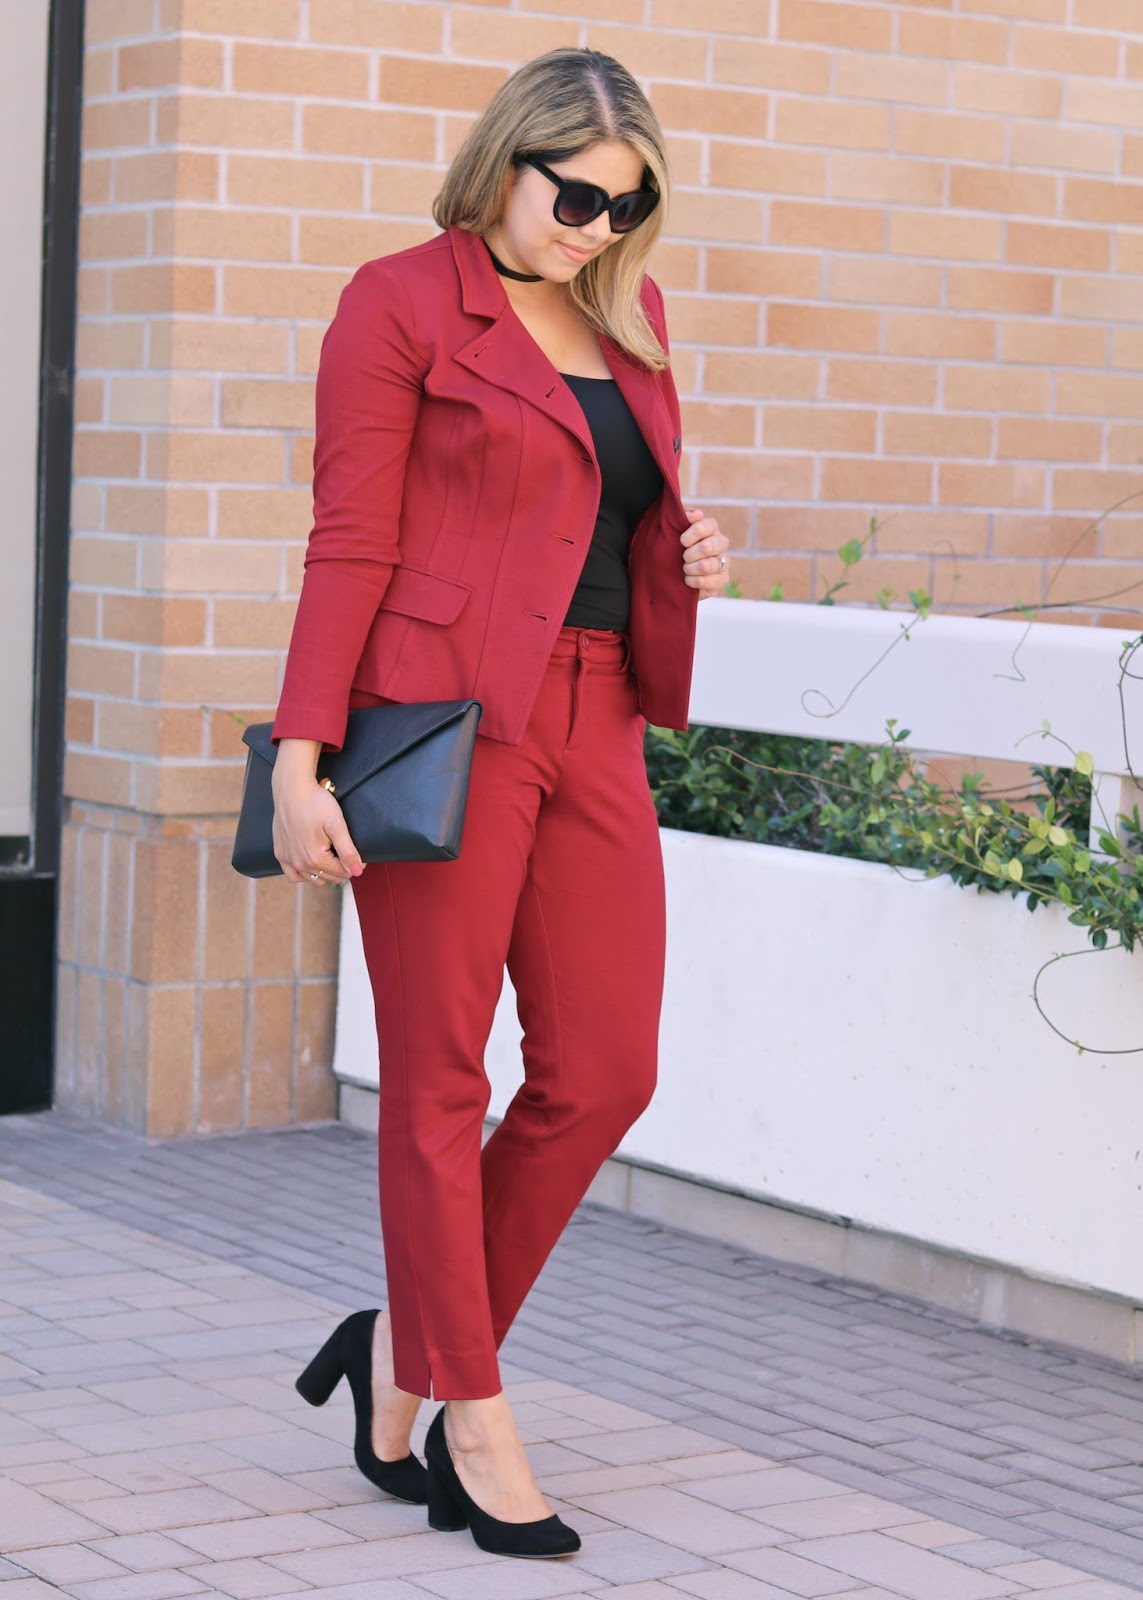 black chunky heels, black blocked heel shoes, women burgundy suit, linell ellis black clutch